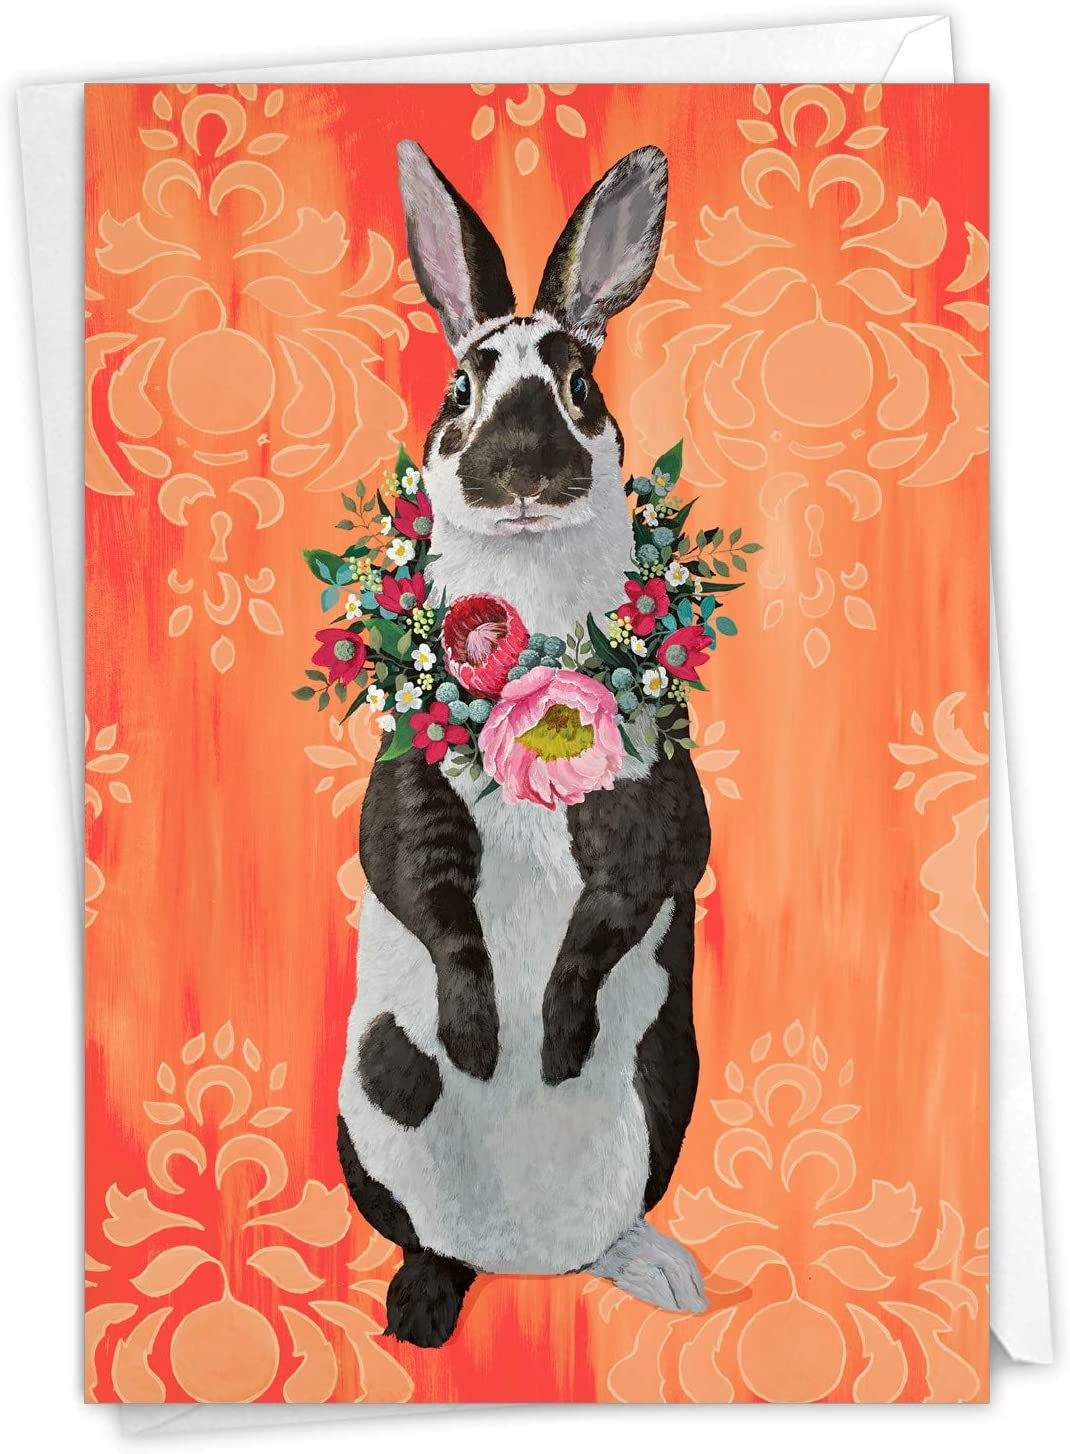 Happy Easter Note Cards  Notecards  Blank Inside  Blank Envelopes  Set of 10  Bunny  Red  Sign  Spring  Wave  Fun  Gift  Cute!!!